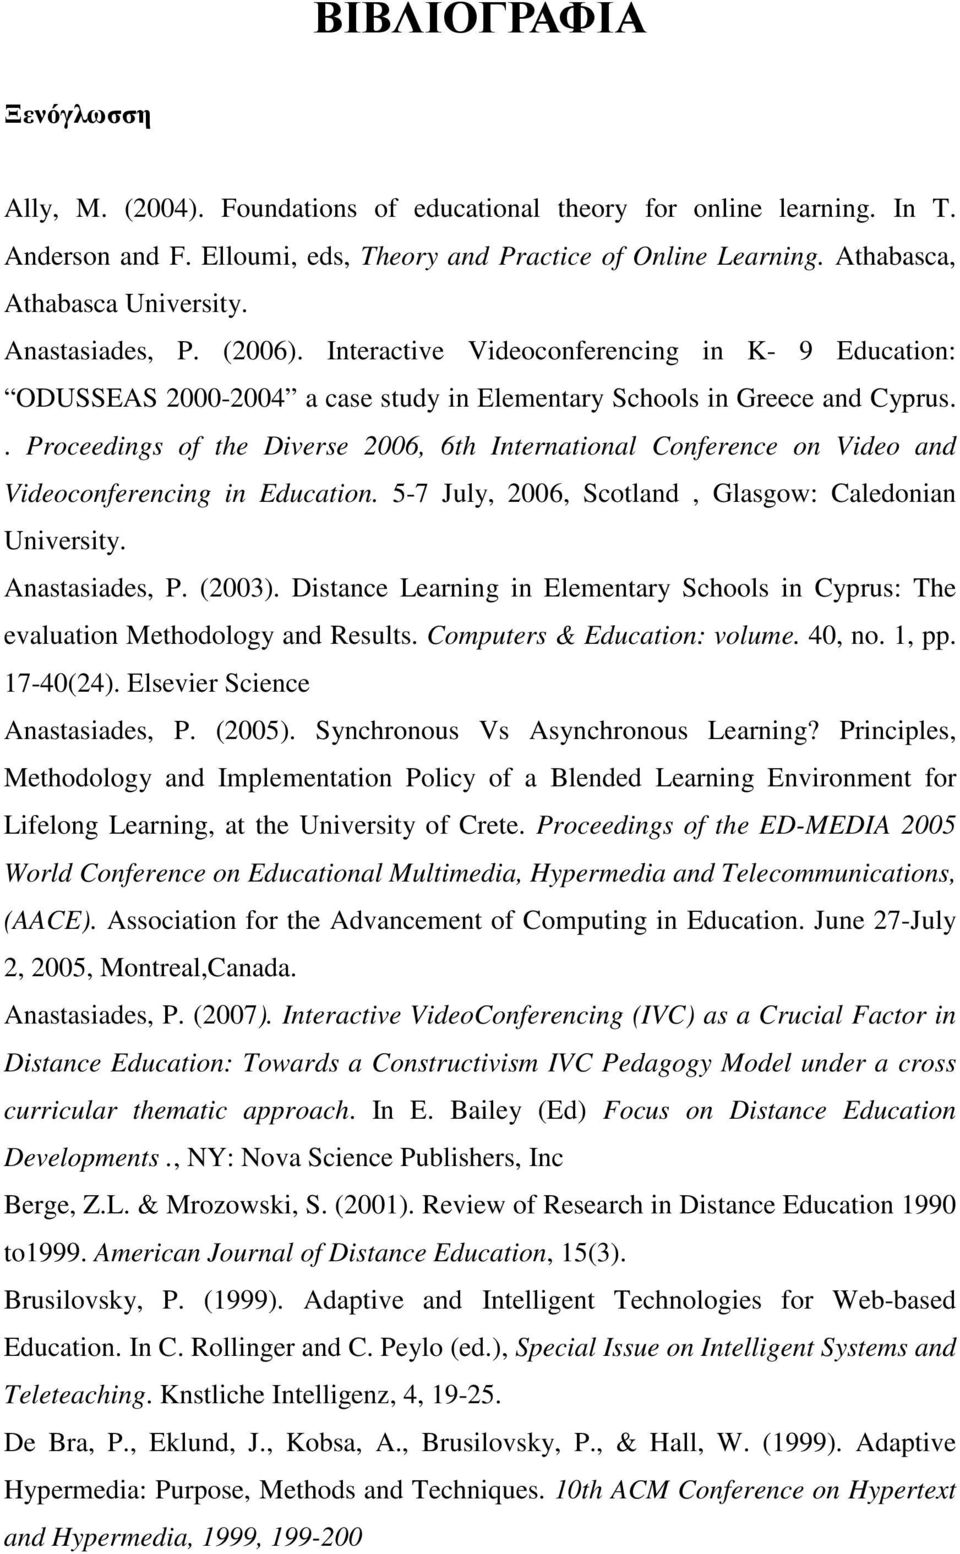 . Proceedings of the Diverse 2006, 6th International Conference on Video and Videoconferencing in Education. 5-7 July, 2006, Scotland, Glasgow: Caledonian University. Anastasiades, P. (2003).